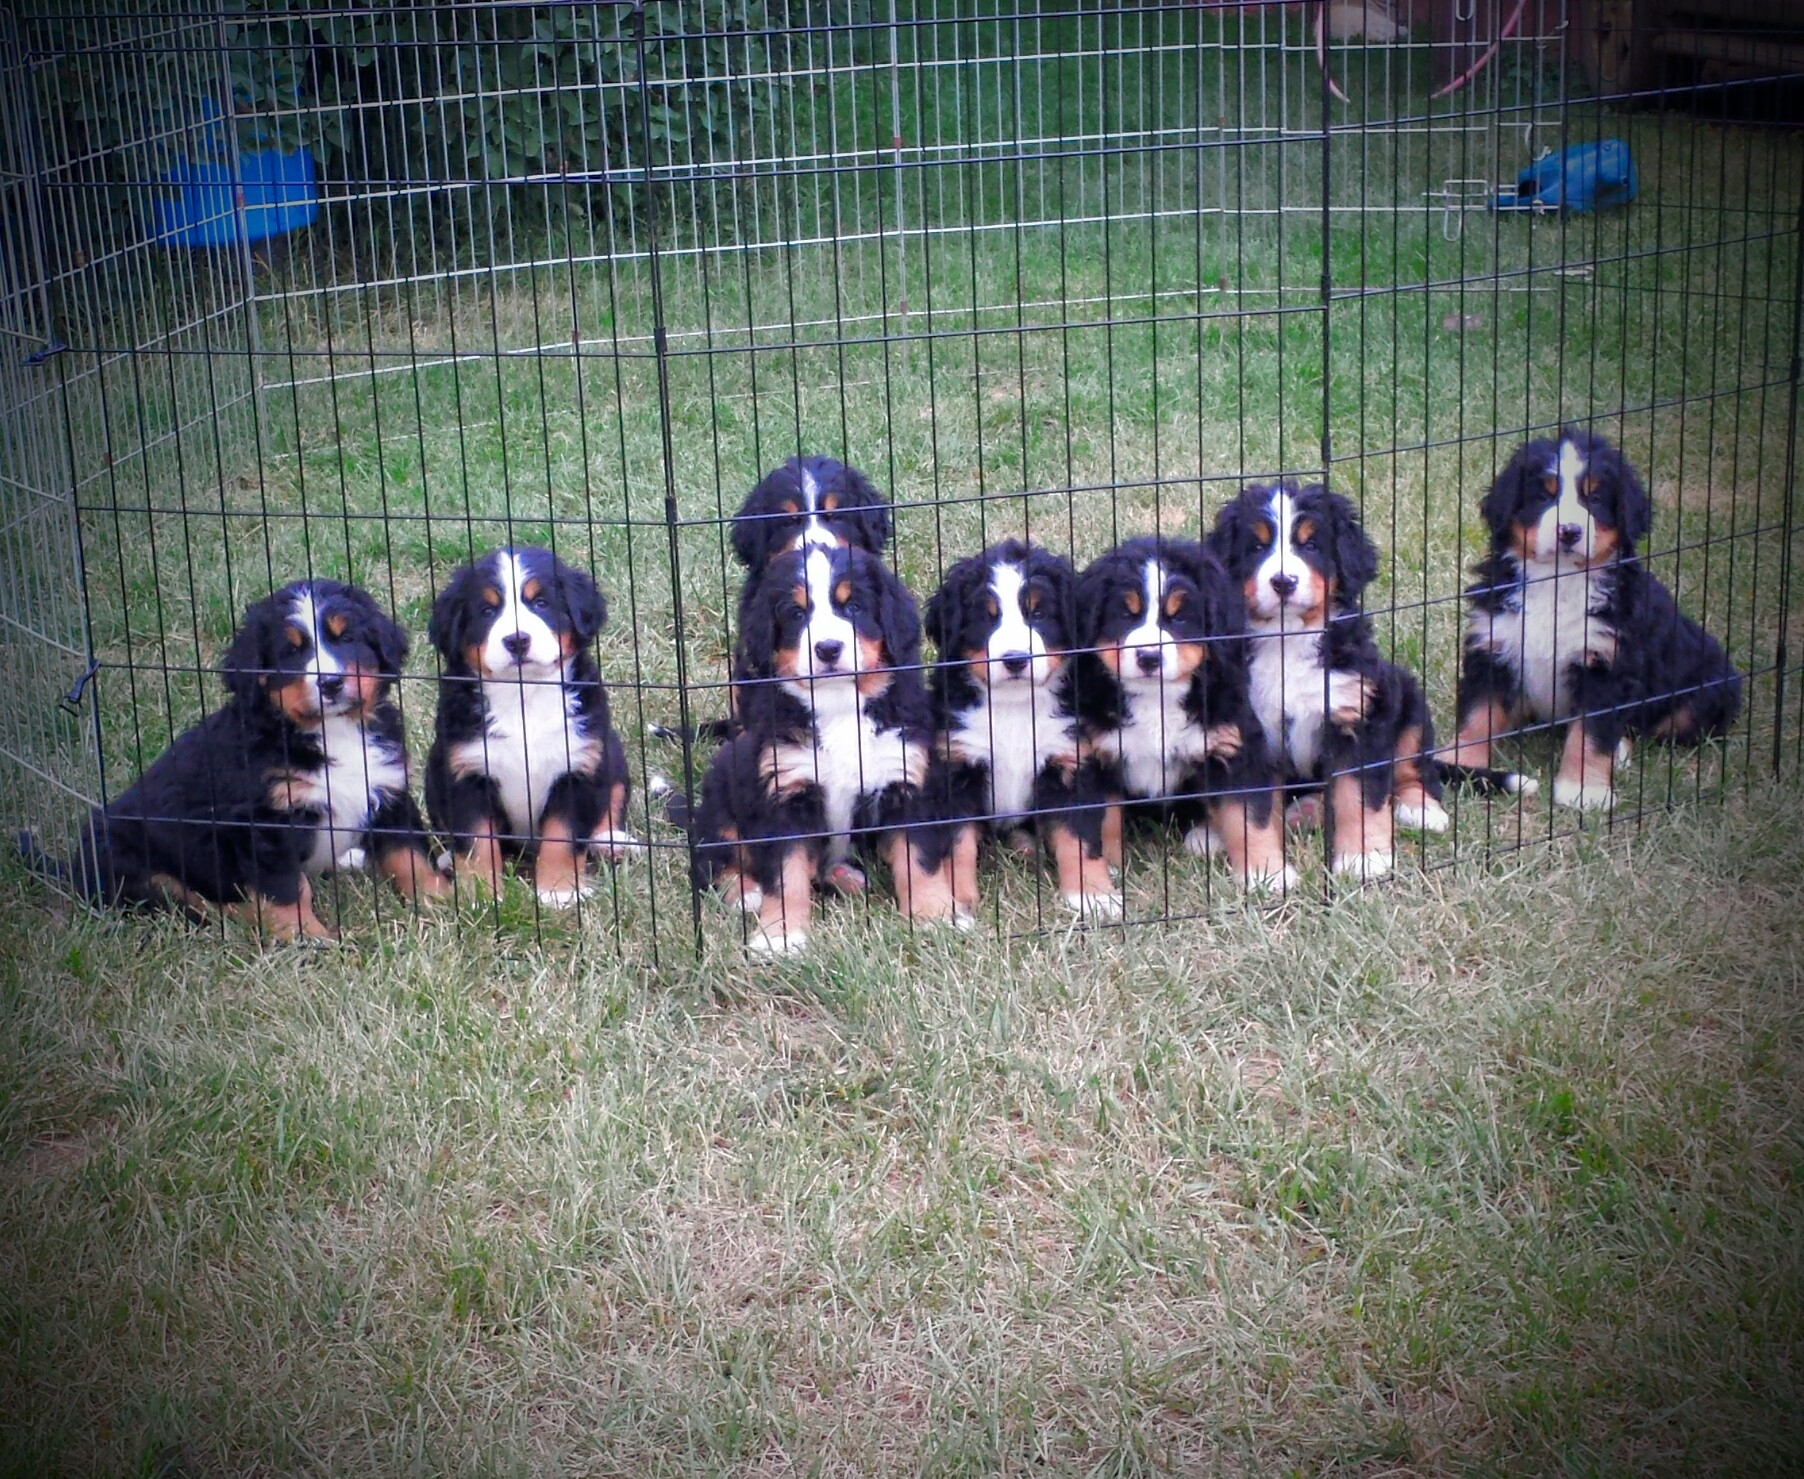 Here are a litter of Buster's pups.